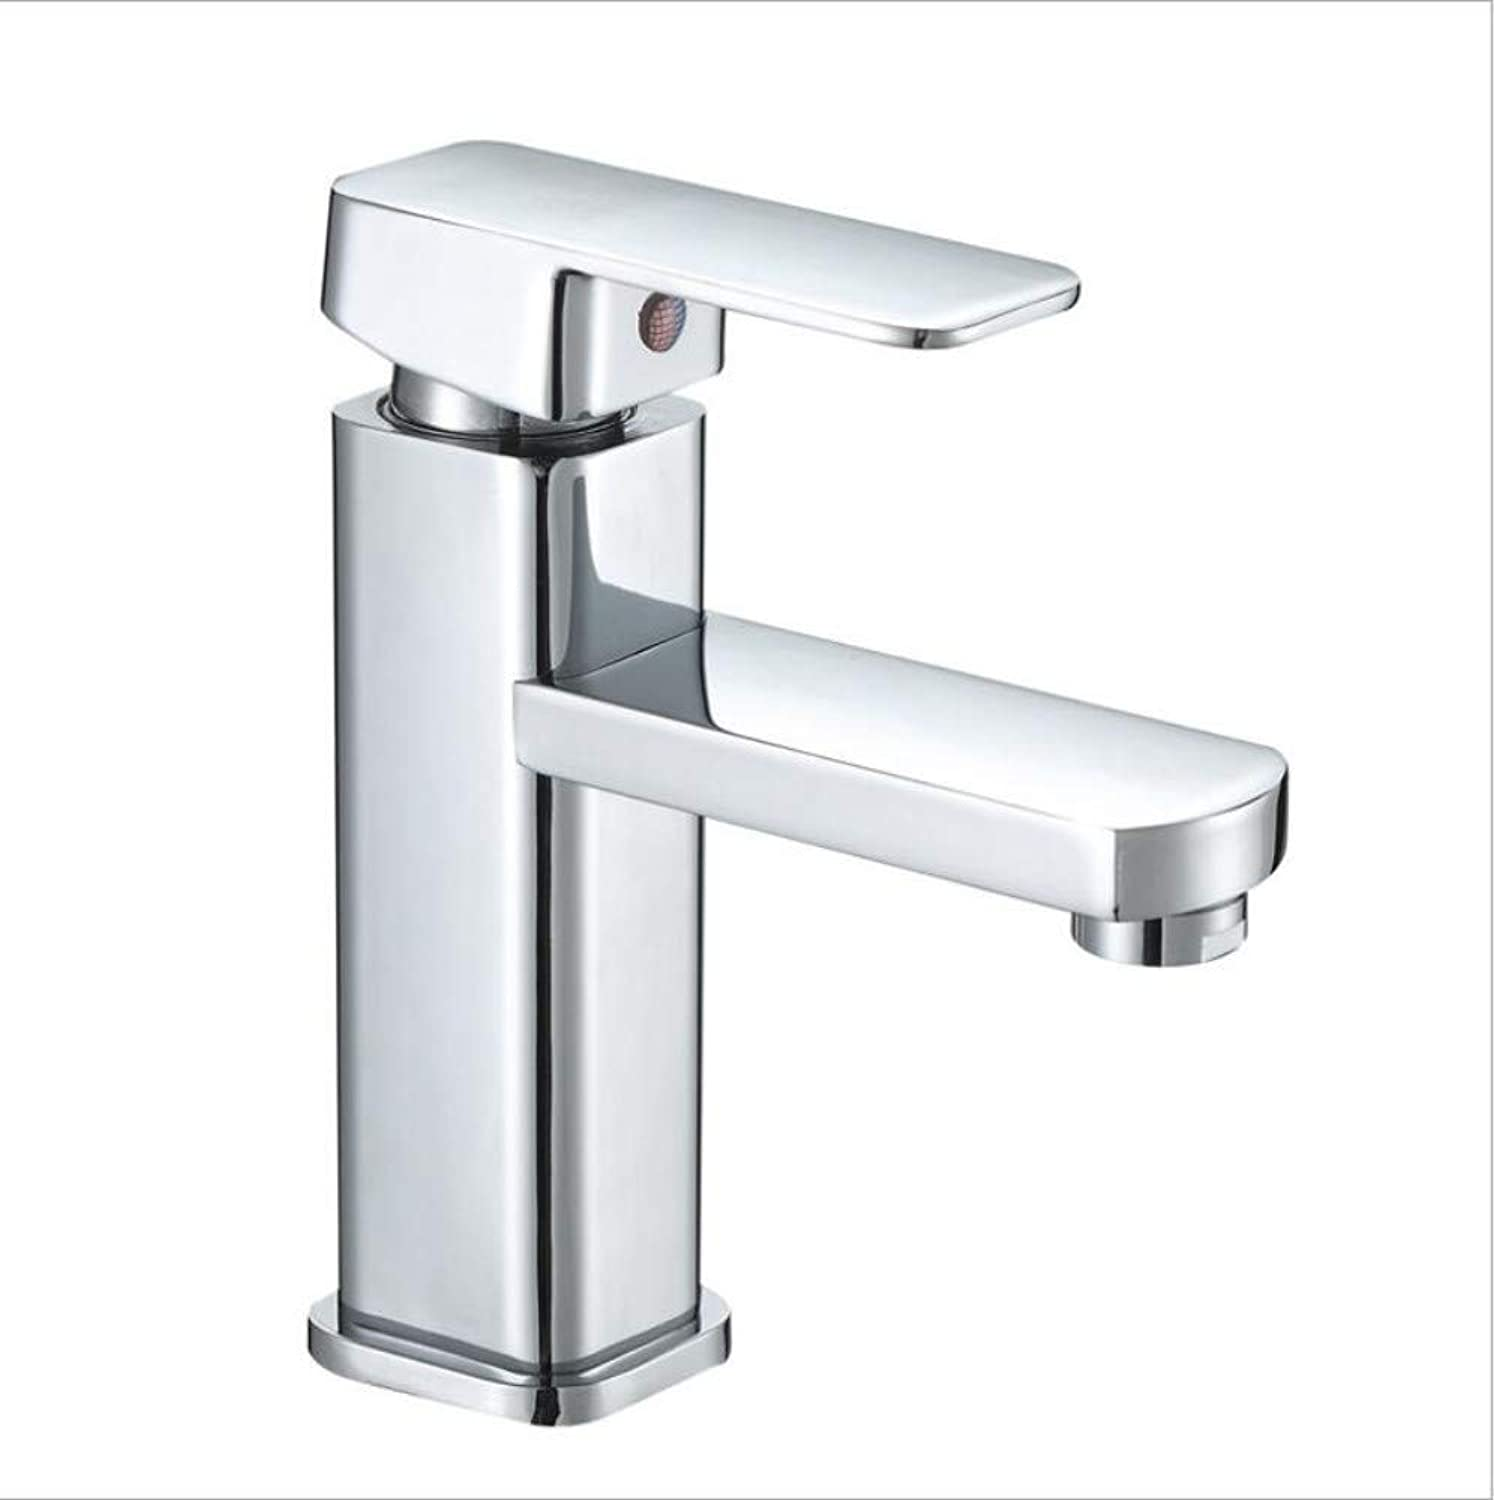 Bathroom Sink Basin Lever Mixer Tap Square Single Hole Wash Basin Hot and Cold Faucet Square Basin Bathroom Cabinet Mixing Faucet